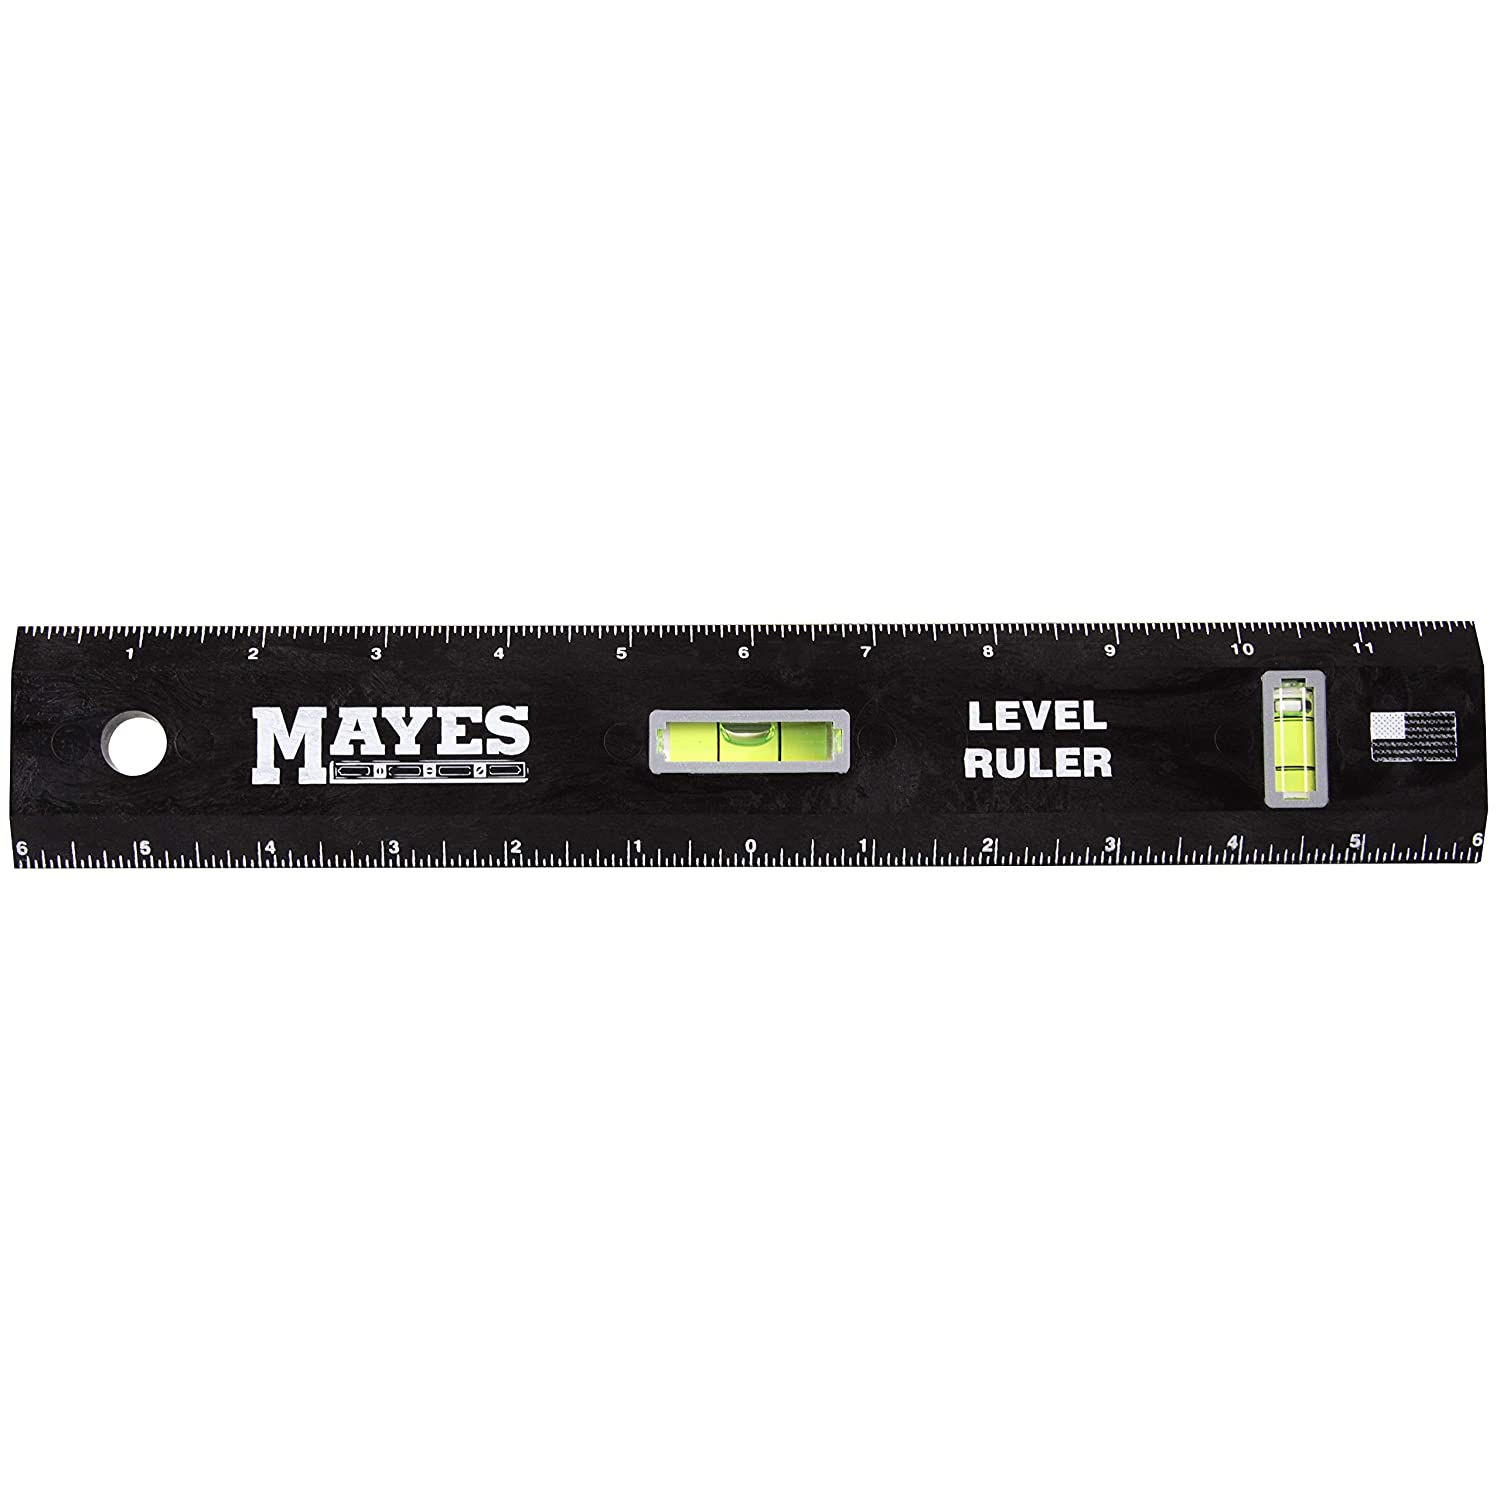 Mayes 10742 12 Poly Level Rule